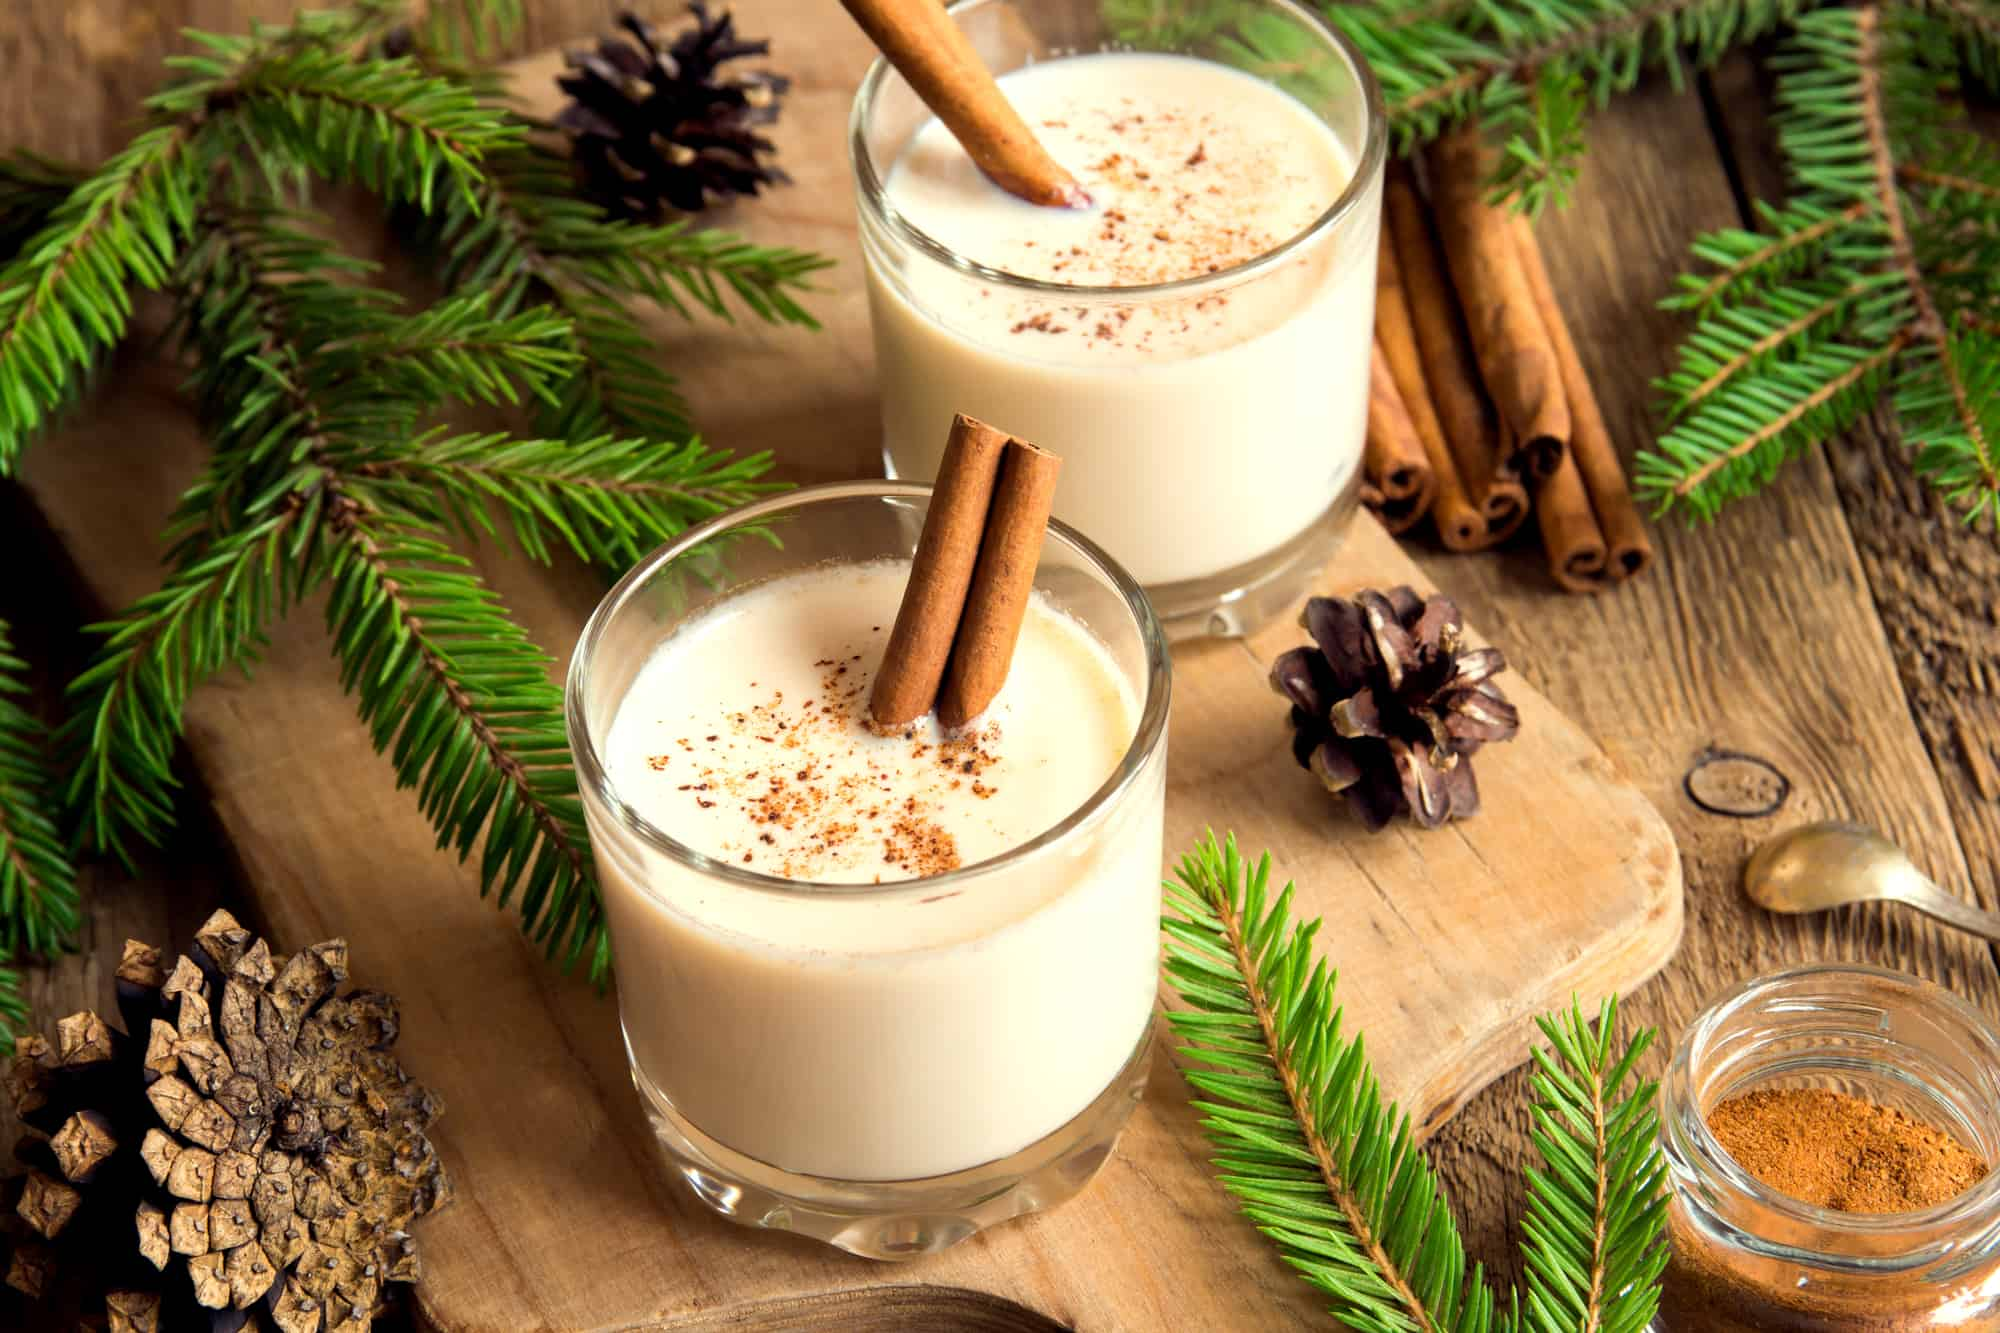 two glasses of homemade non-alcoholic eggnog with cinnamon sticks